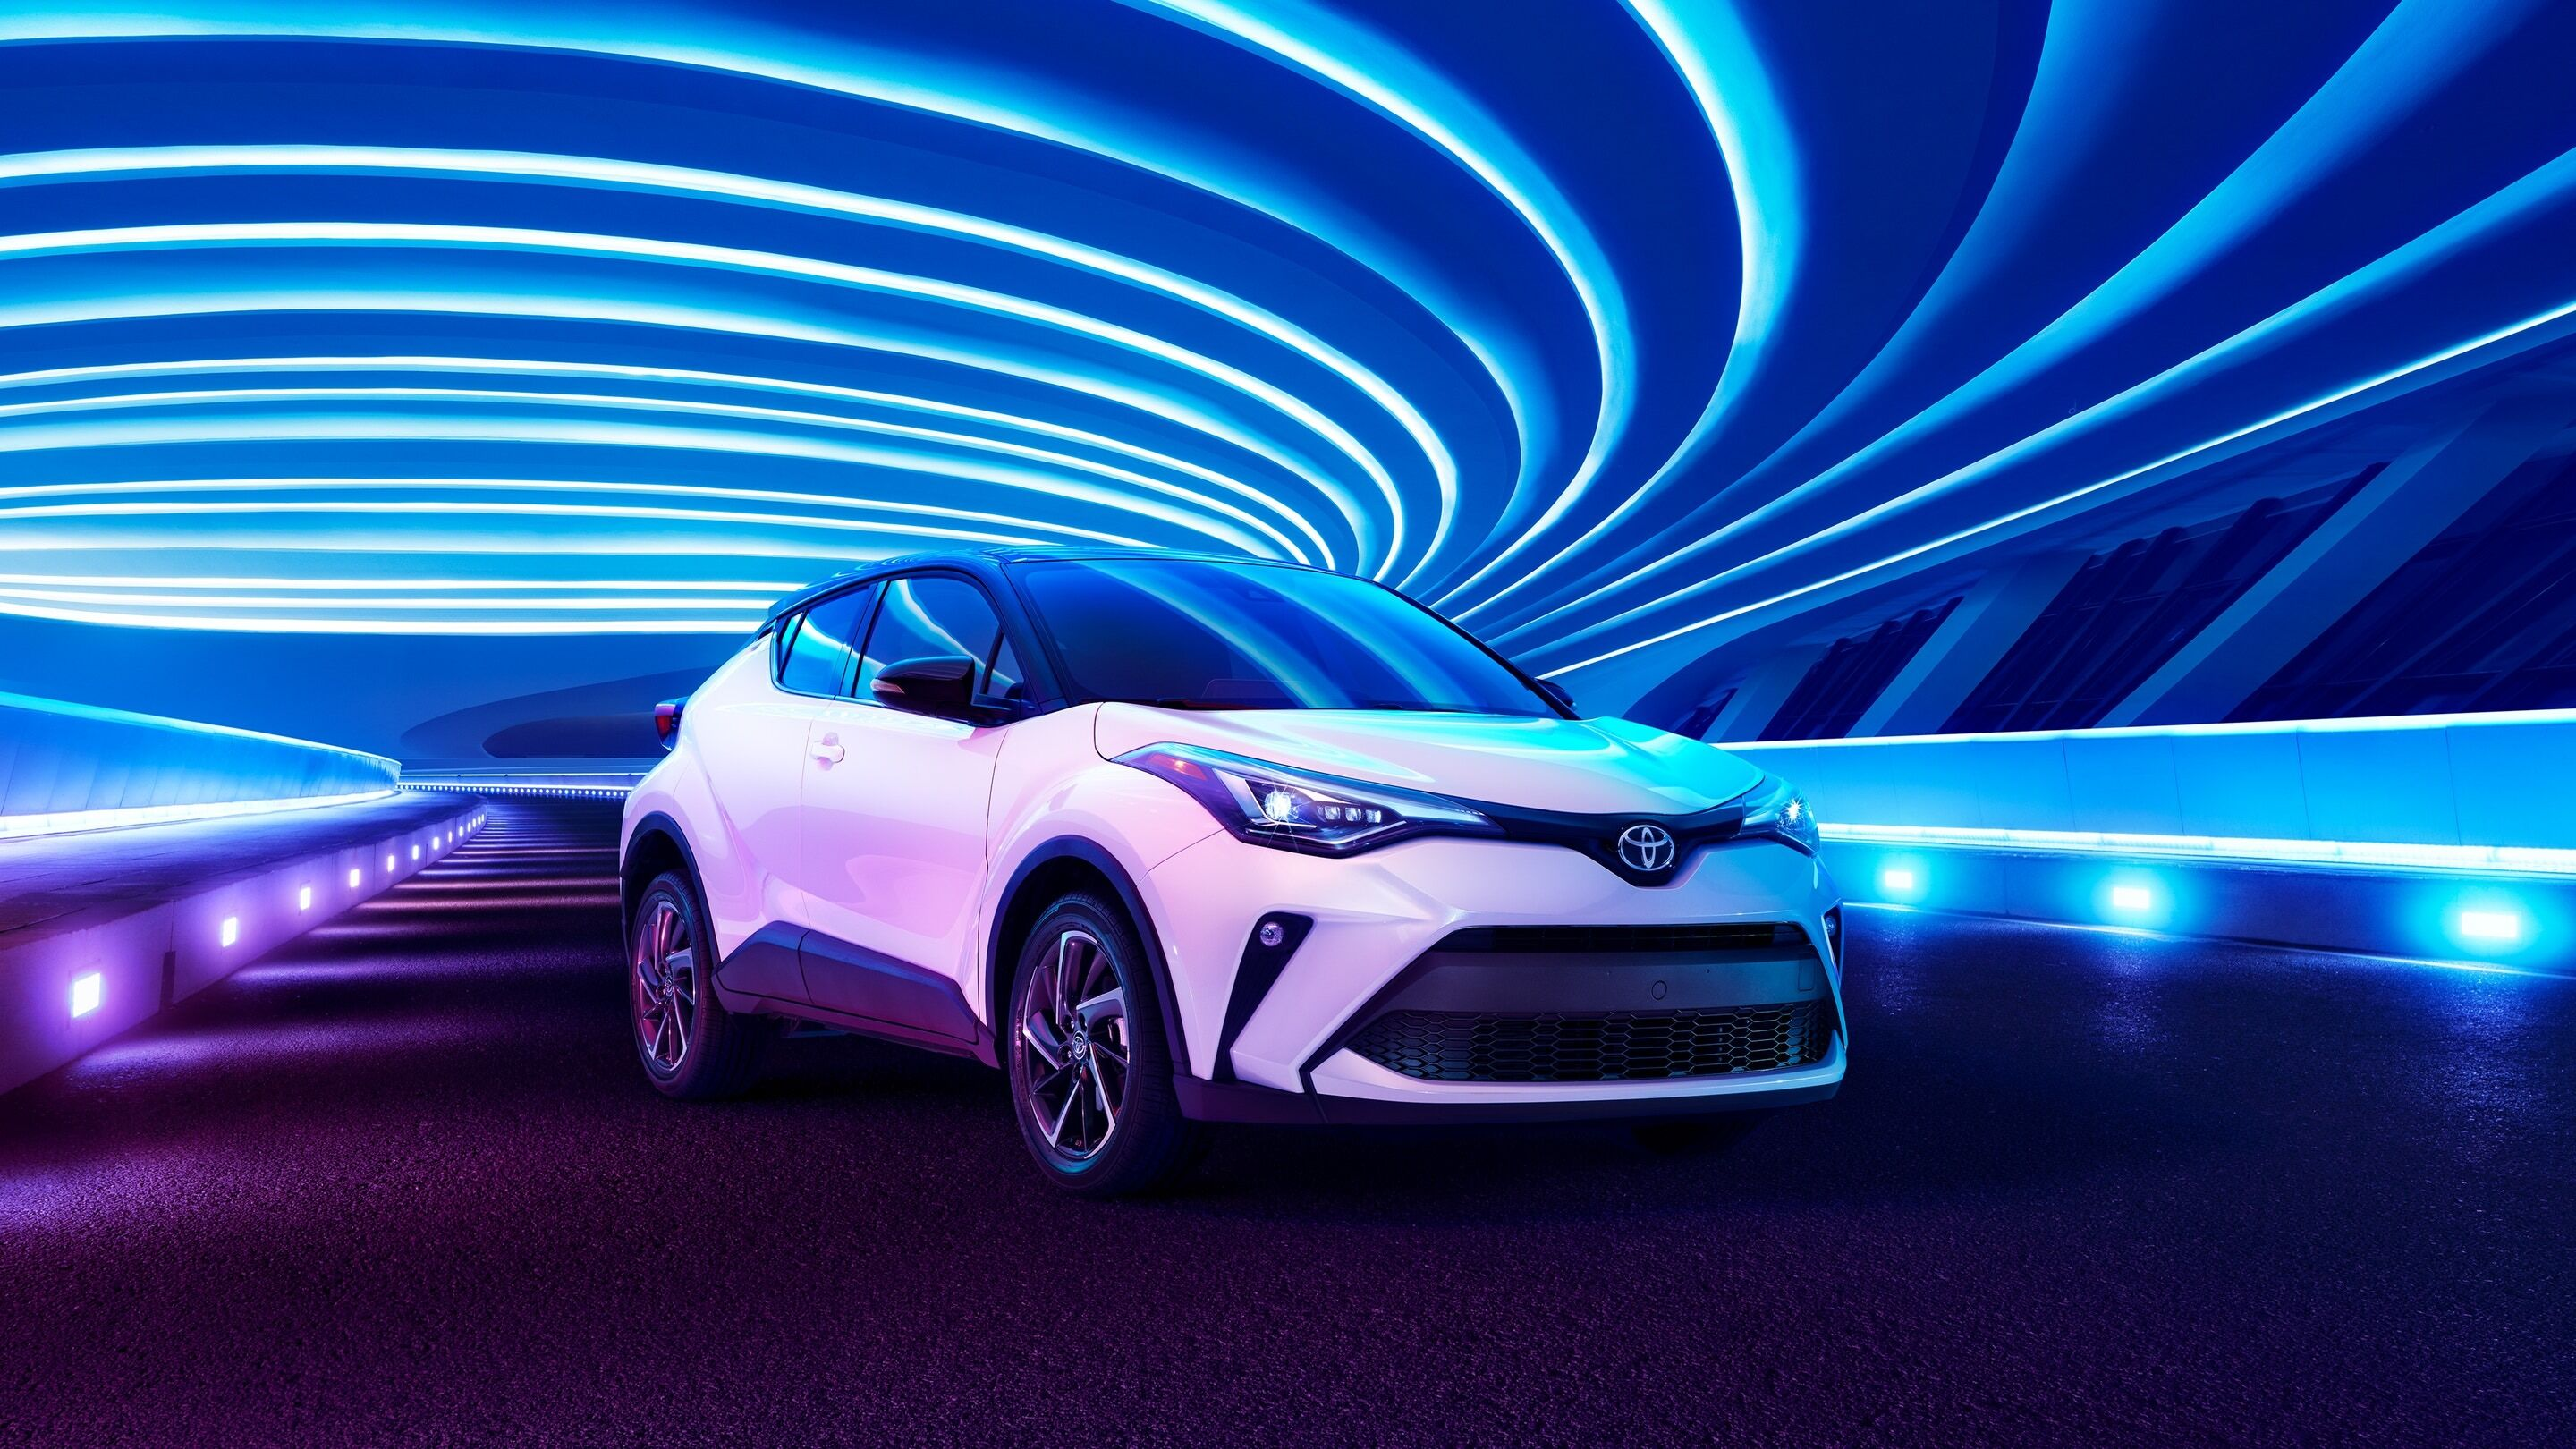 2020 Toyota C-HR with a funky blue background